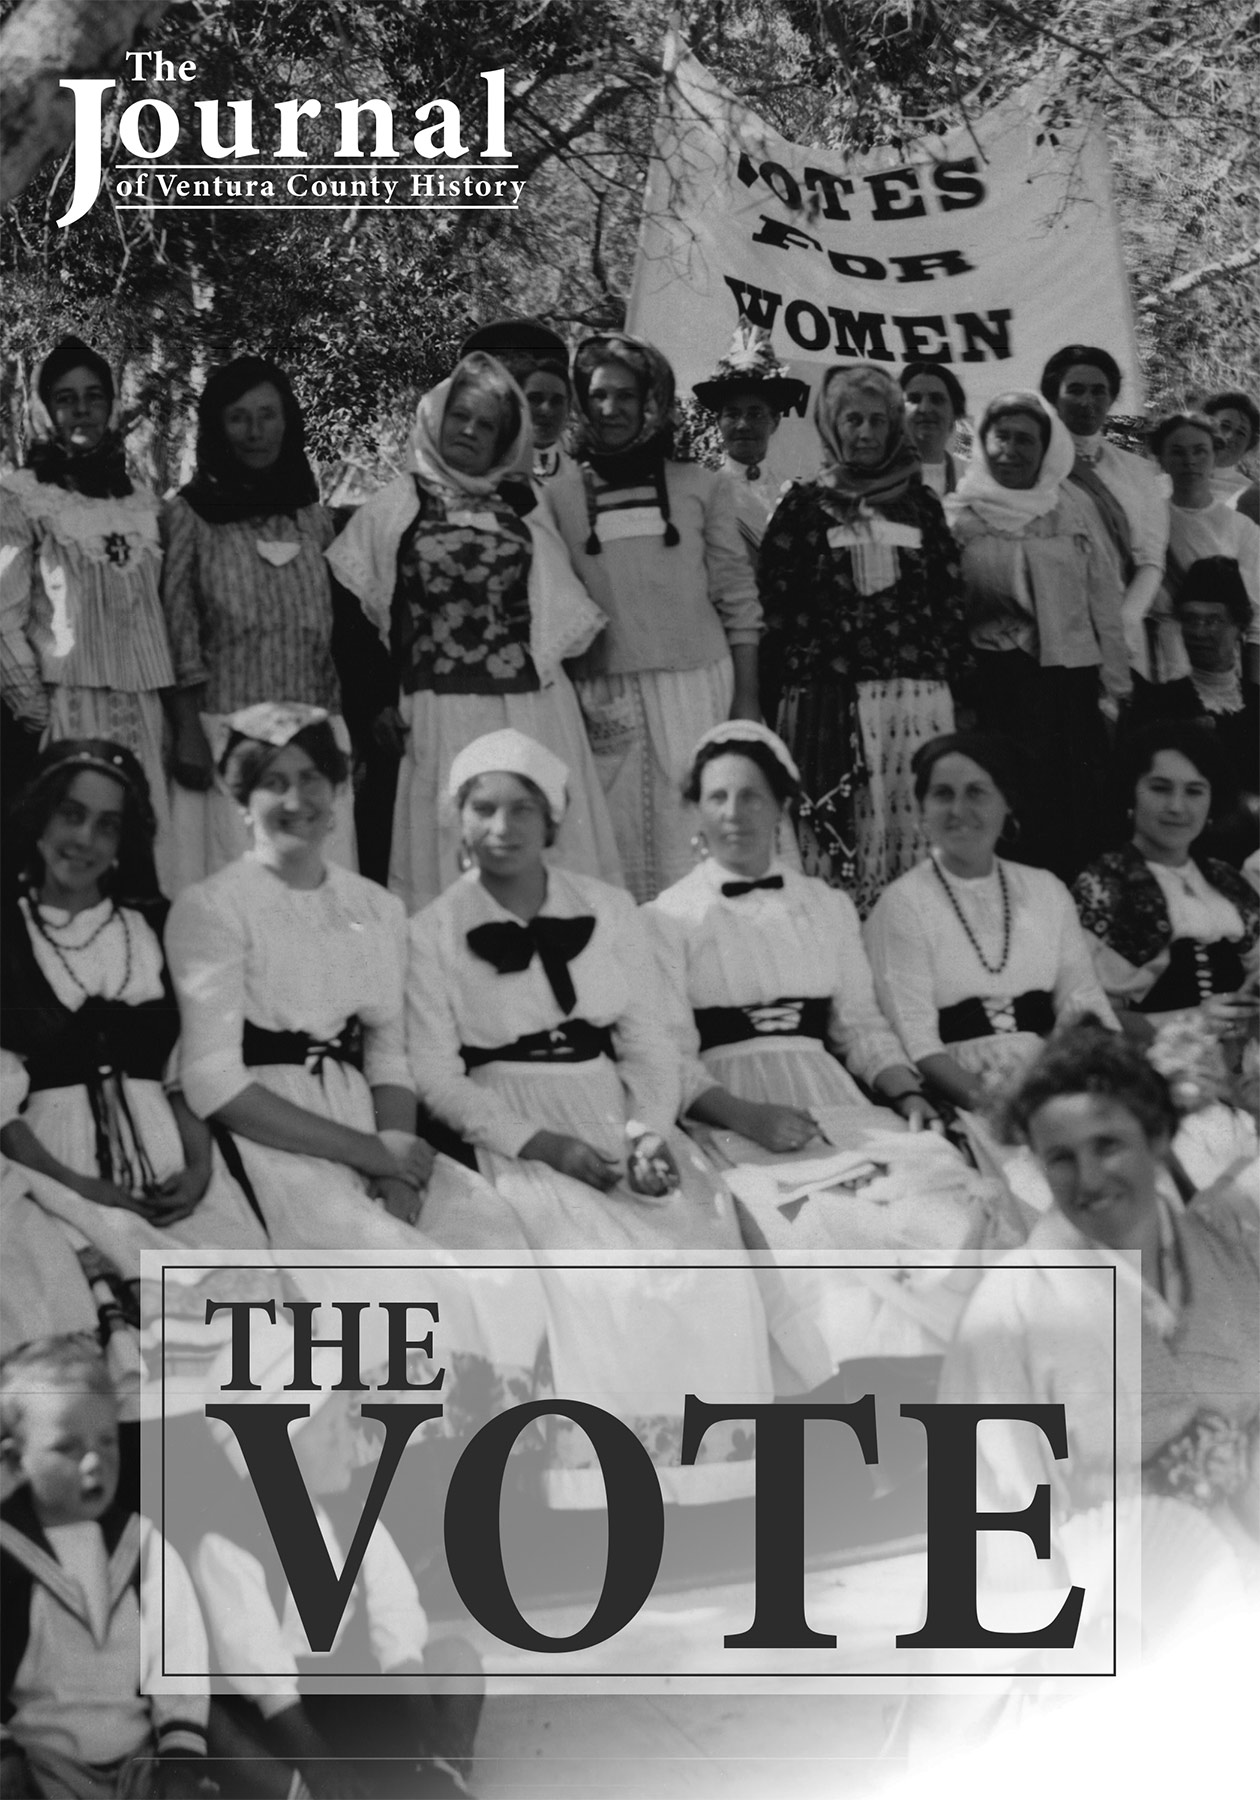 Journal of Ventura County, Vol 62 Number 1 – The Vote